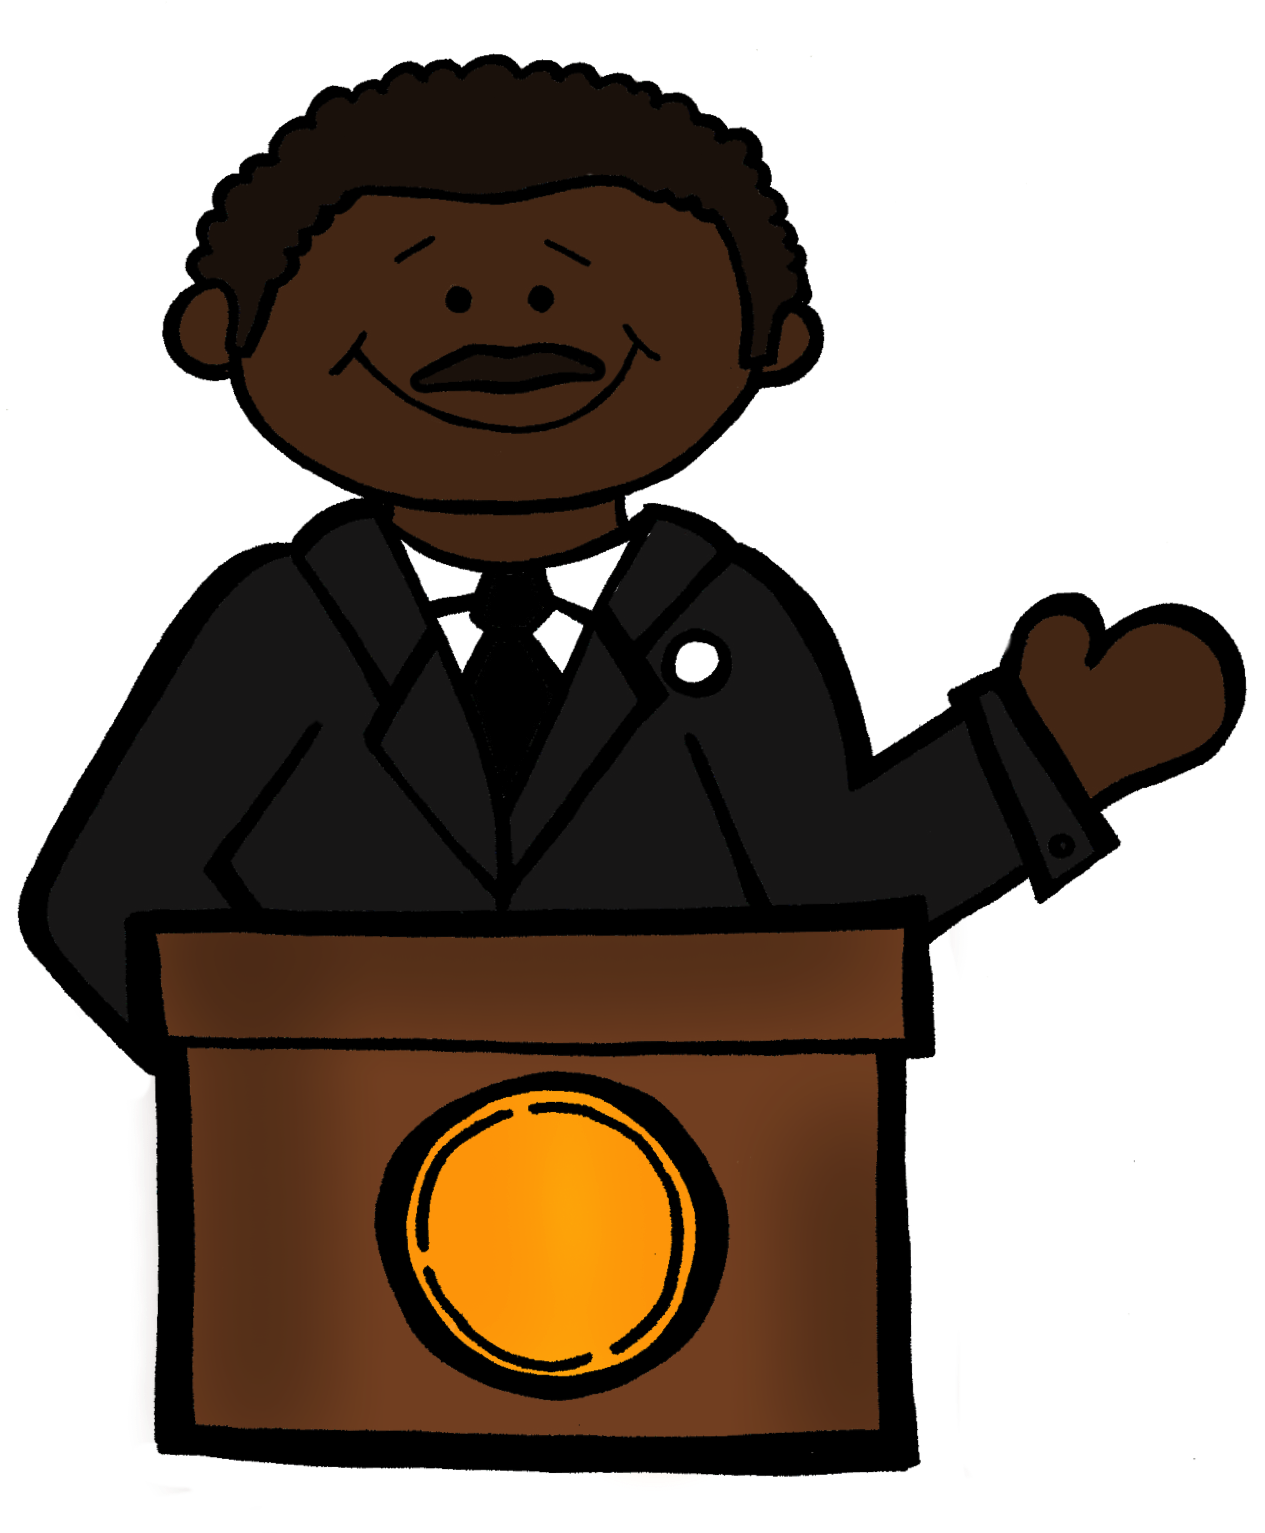 jpg free library Mlk clipart illustration. Busy bees january just.